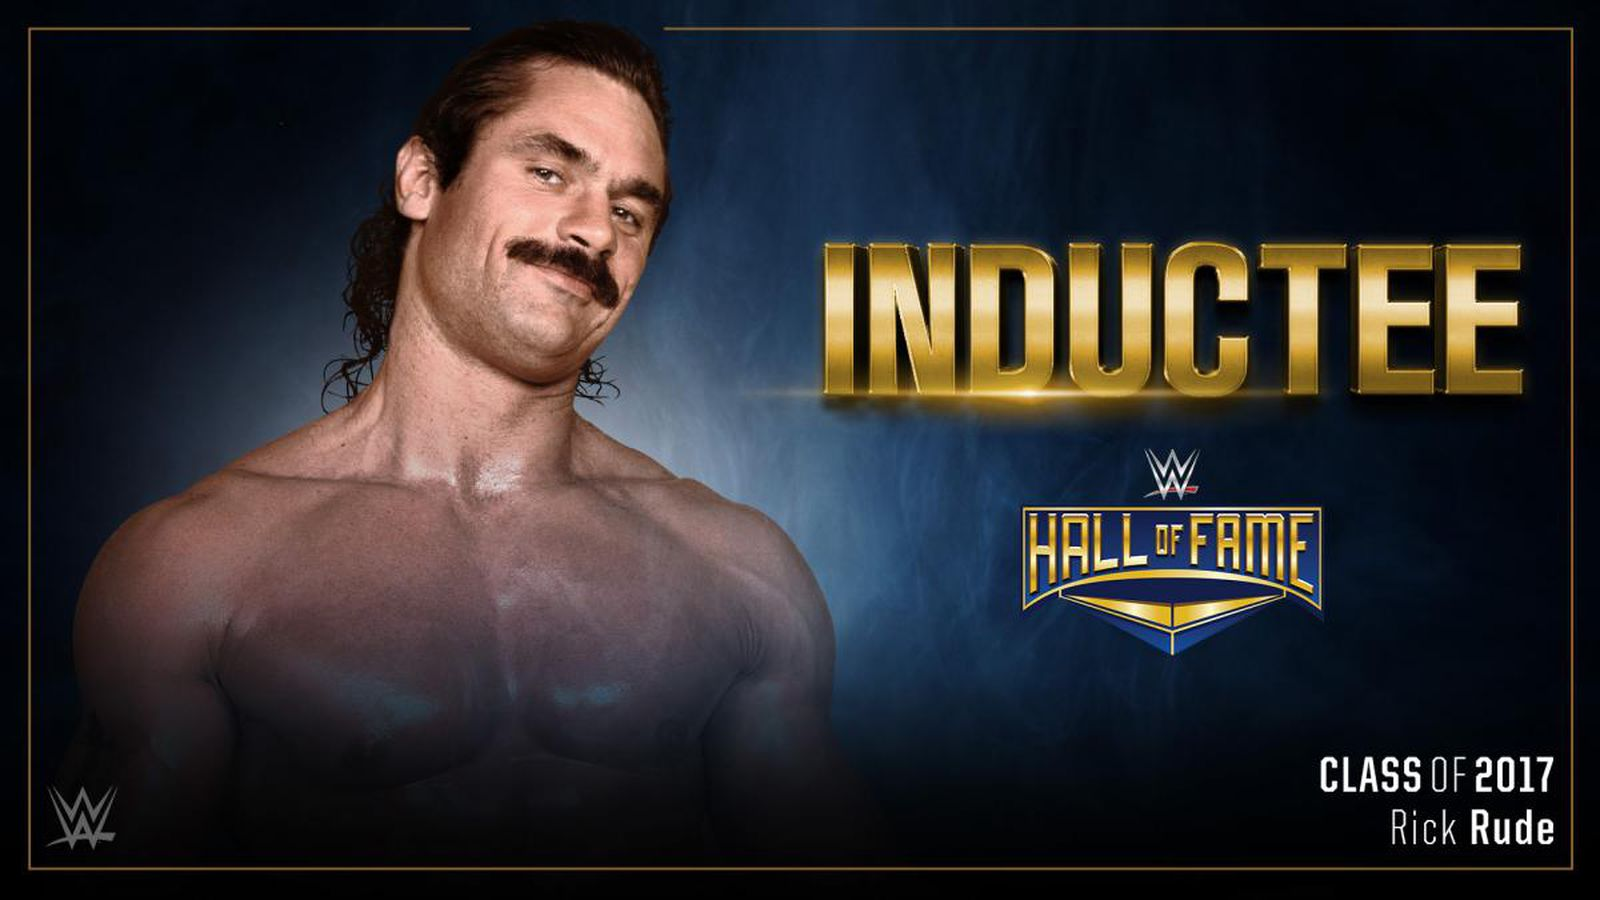 """Ravishing"" Rick Rude joins WWE Hall of Fame class of 2017"